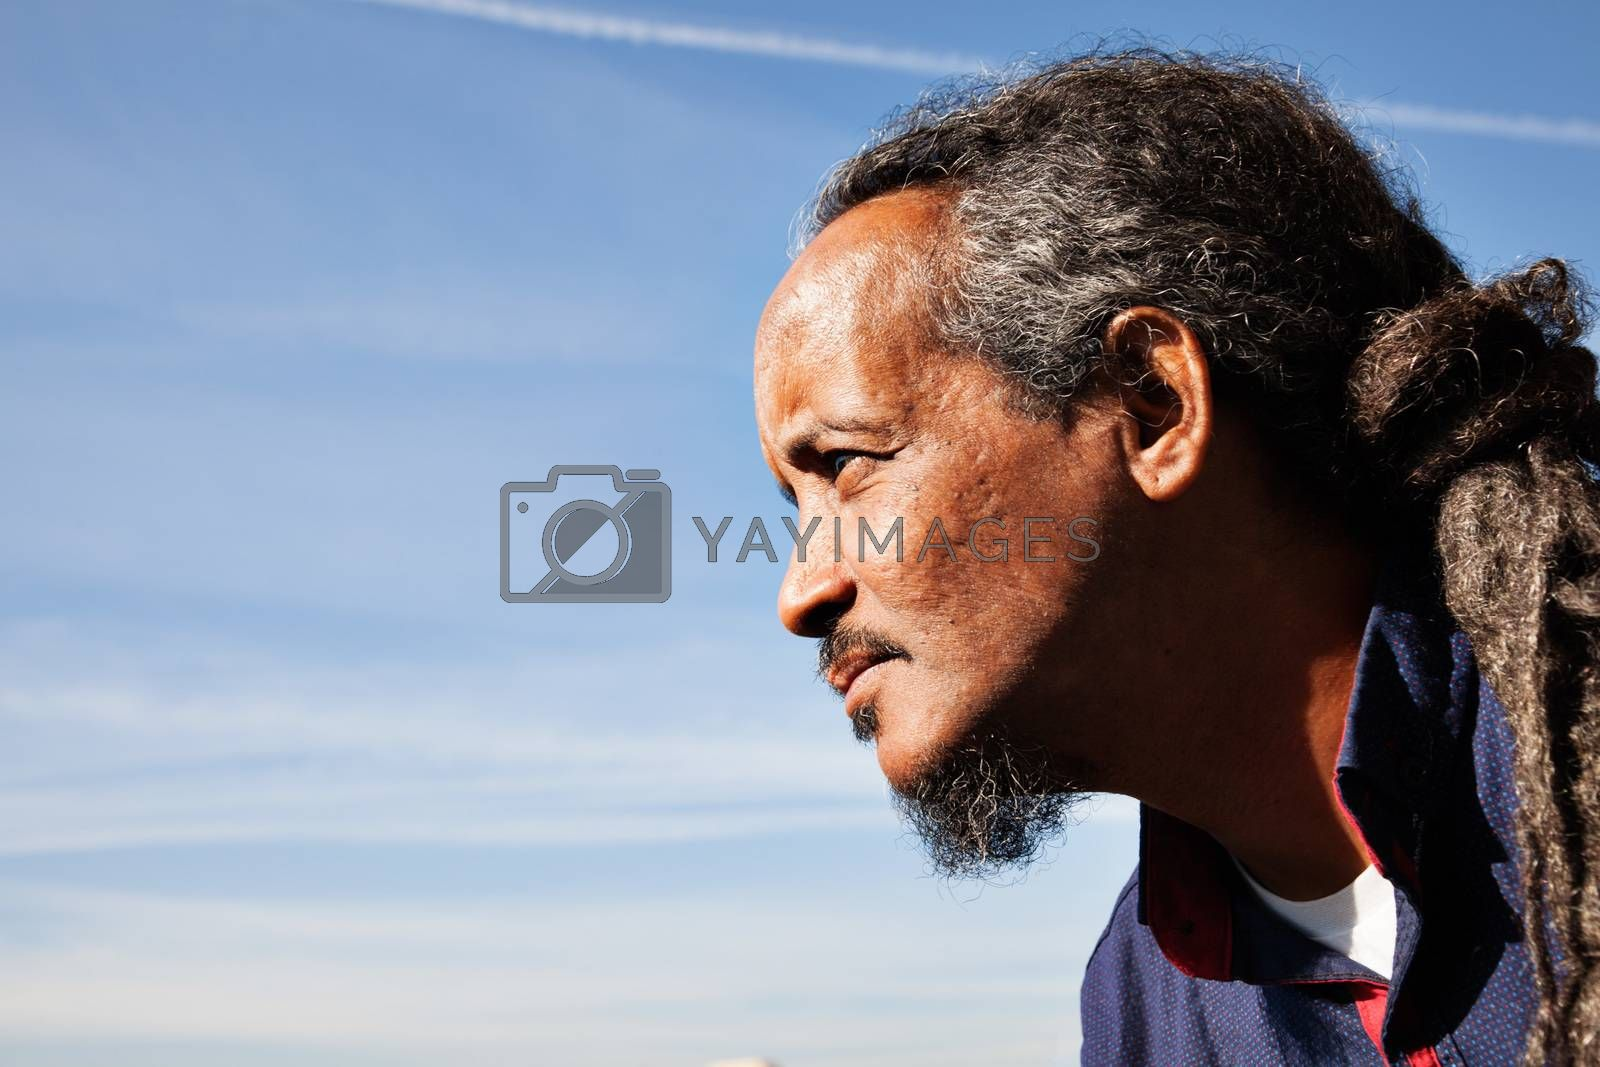 A portrait of a black rastafarian man over a blue sky with some clouds.